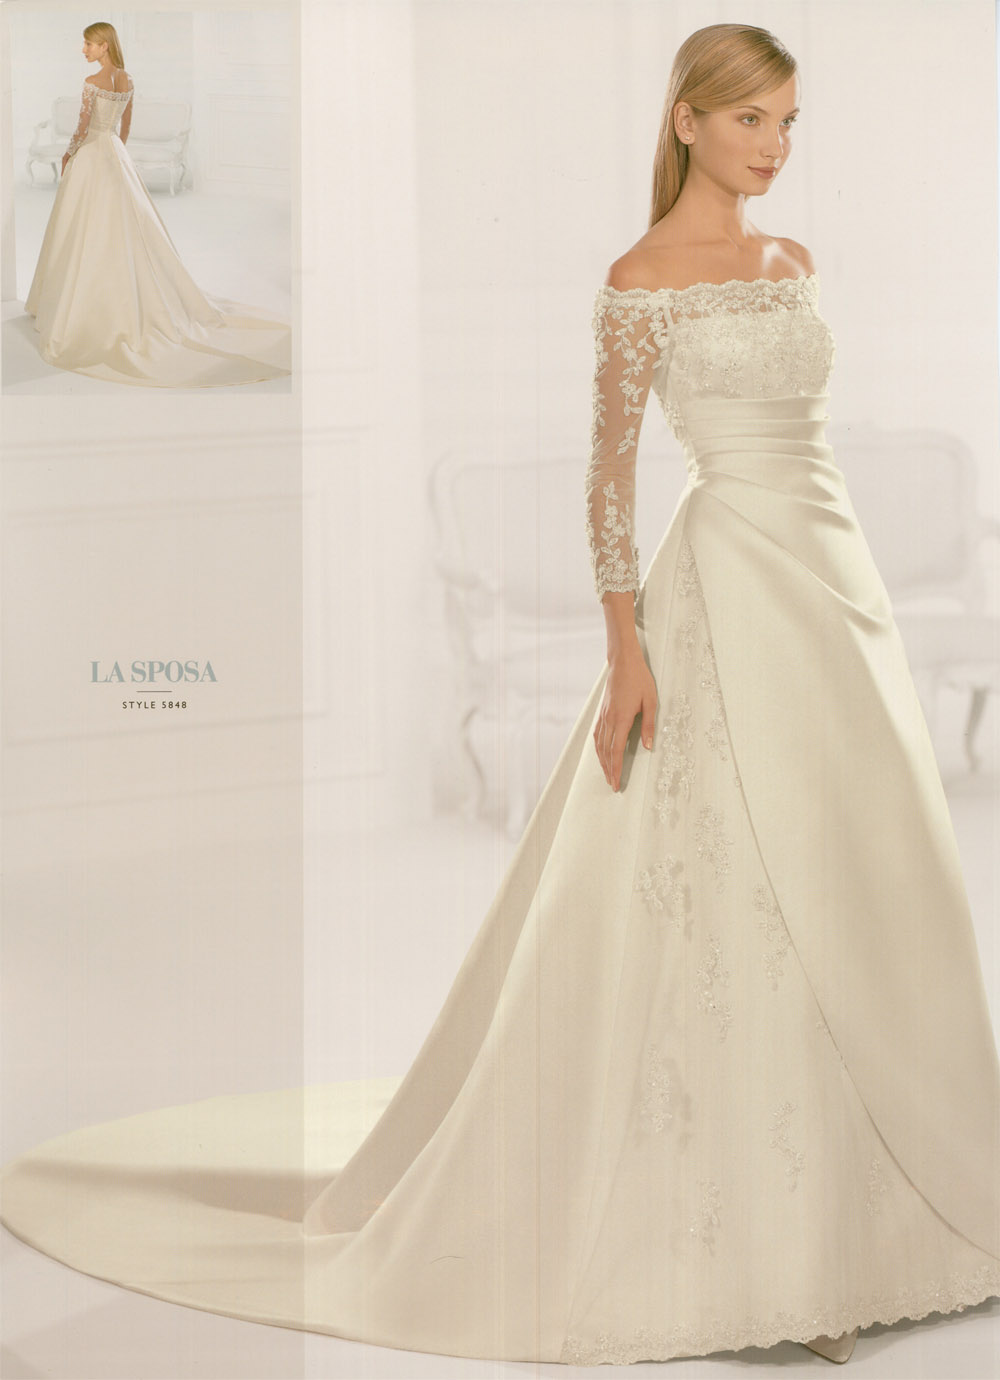 Basic And Main Types Of Wedding Dresses With Sleeves 0011